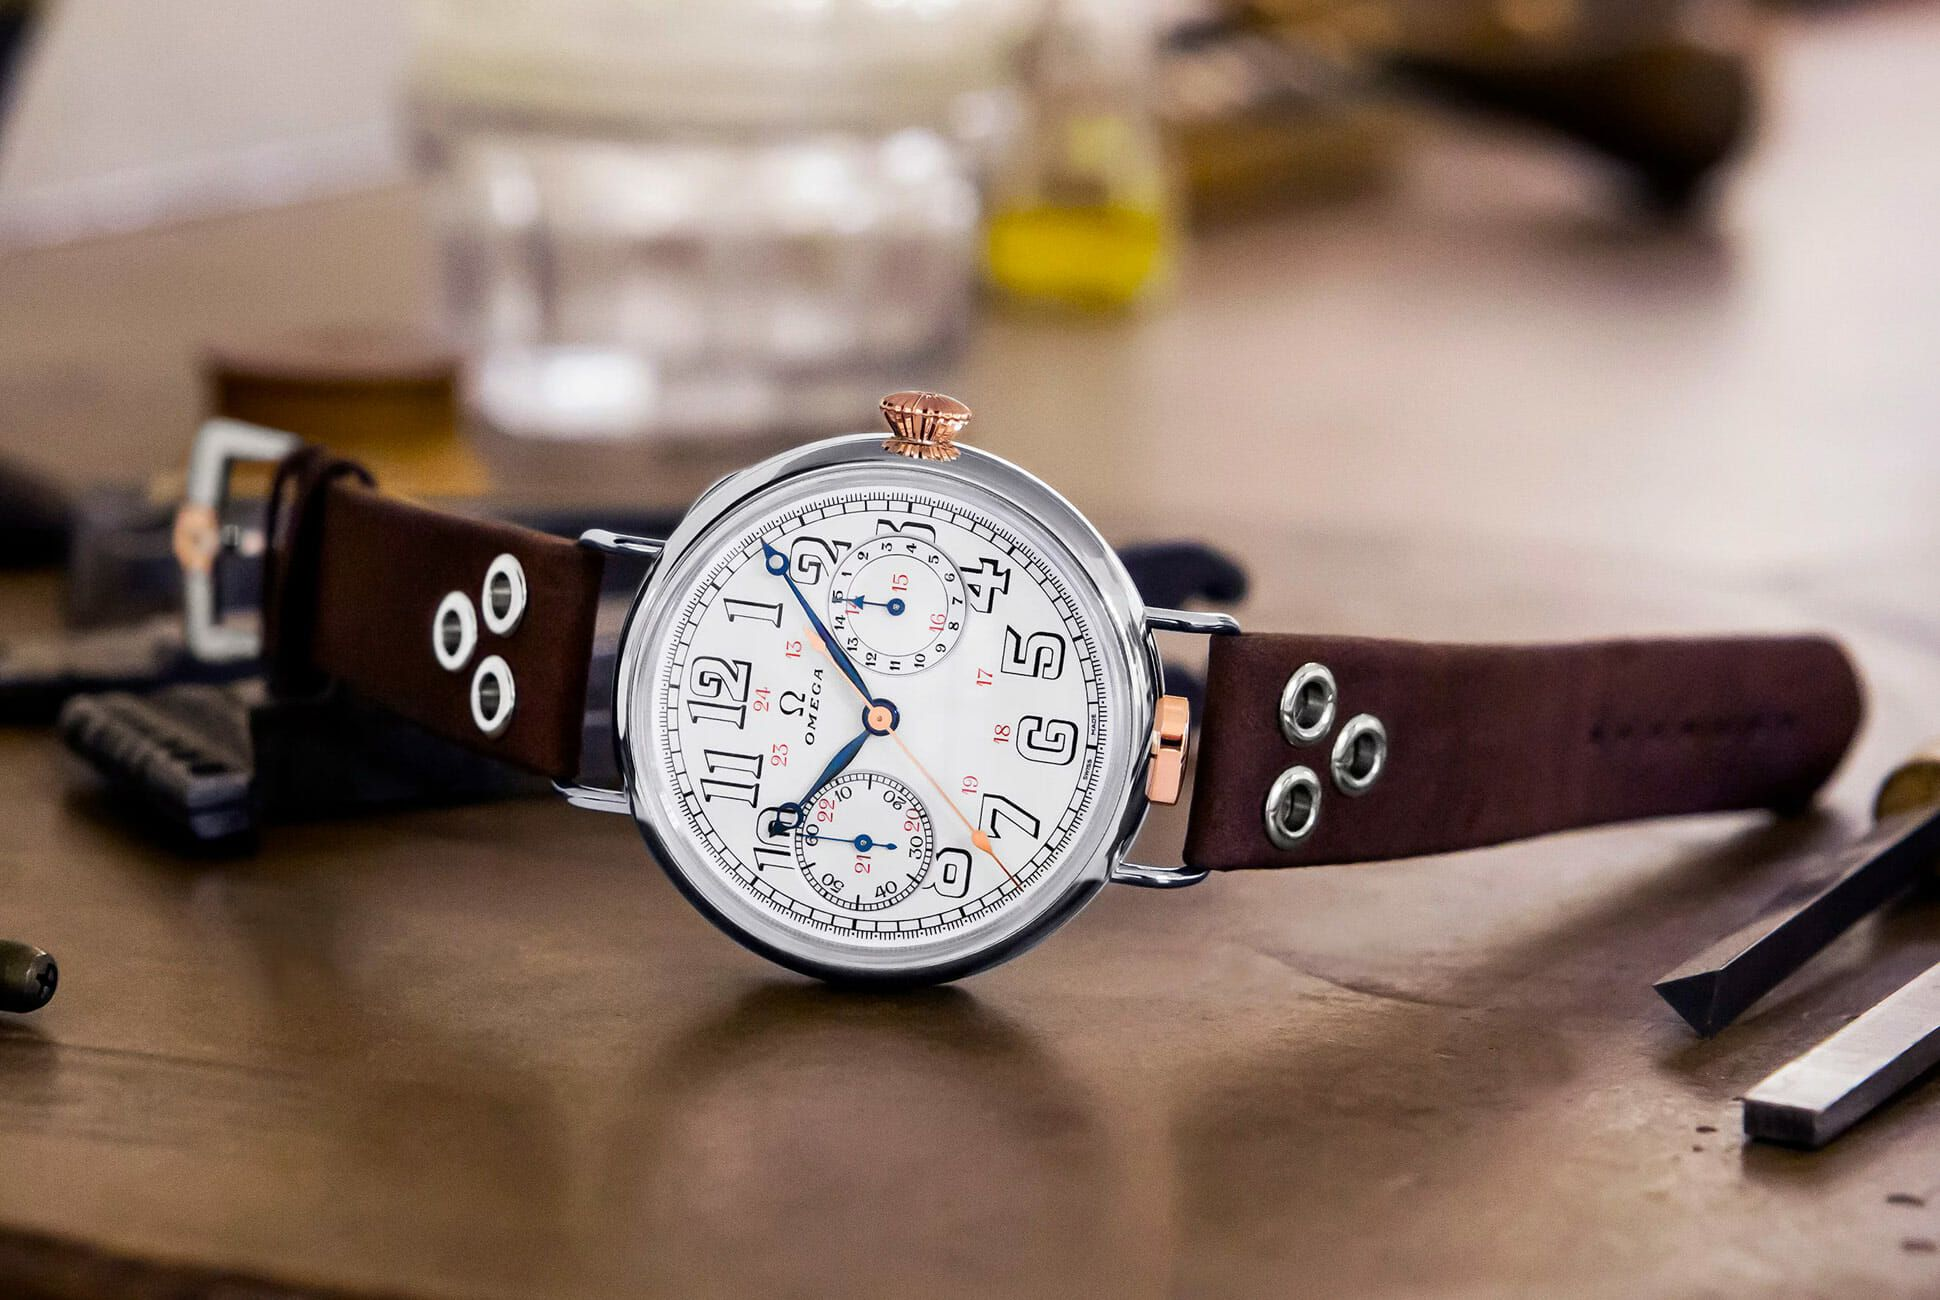 Omega-Chronograph-Limited-Edition-with-Original-Omega-Movement-gear-patrol-1